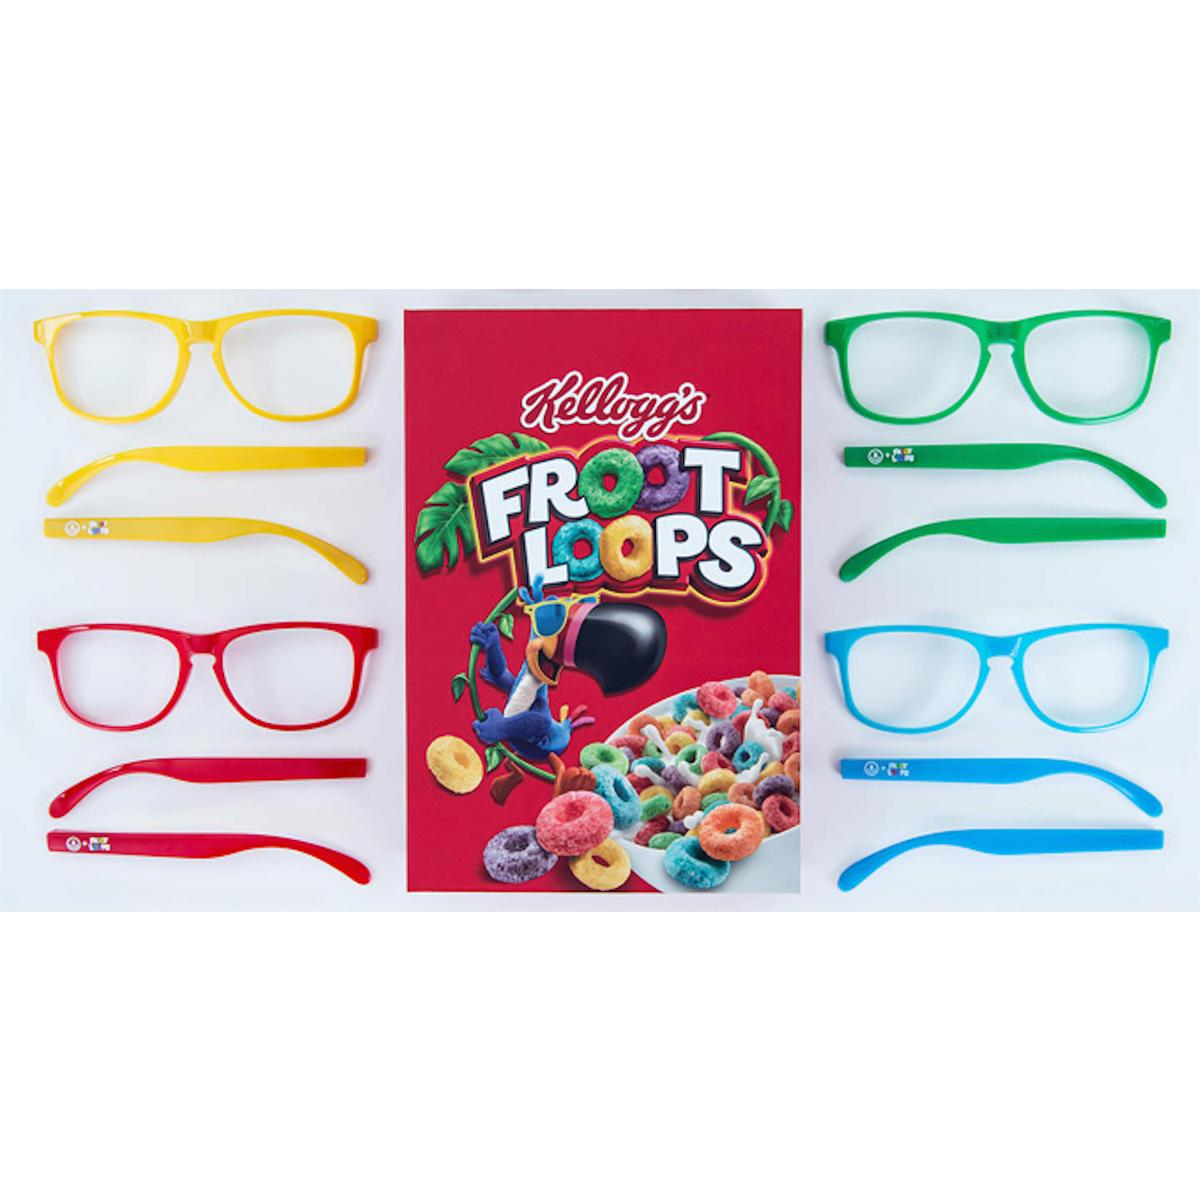 Neff Toucan Sam Sunglasses